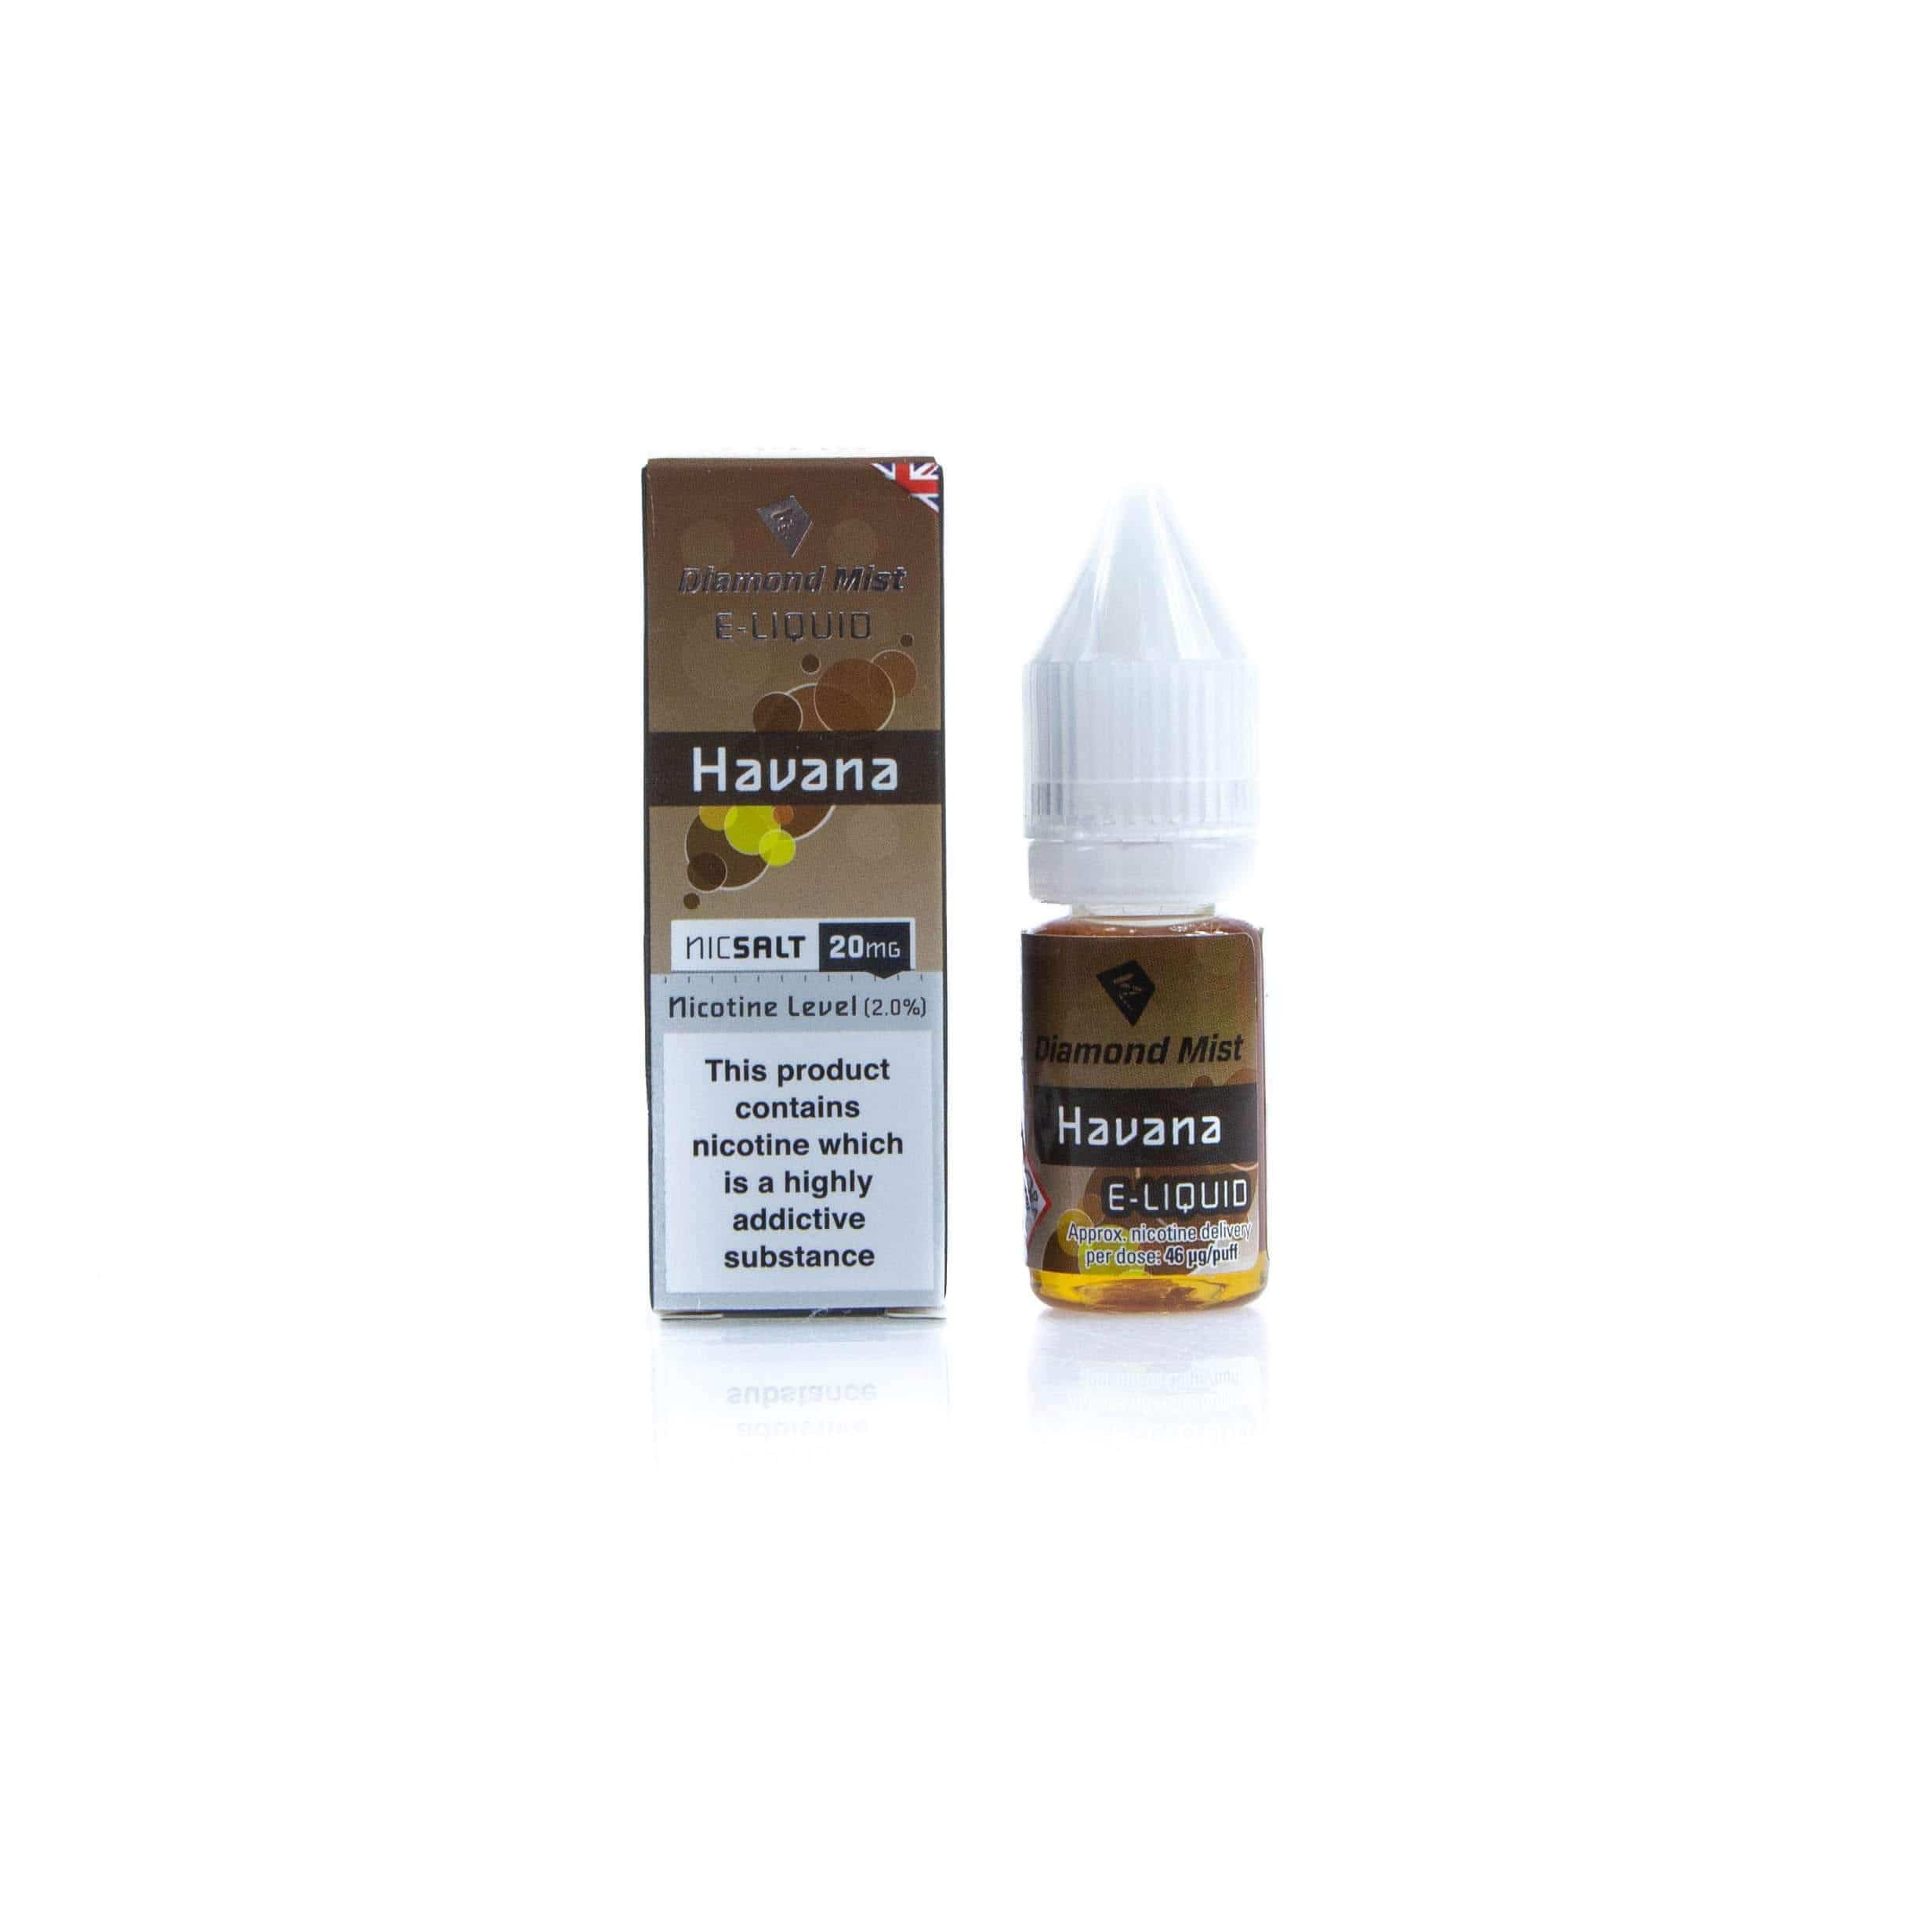 Diamond Mist E-Liquid East Havan@ Nic Salt grey-haze.myshopify.com